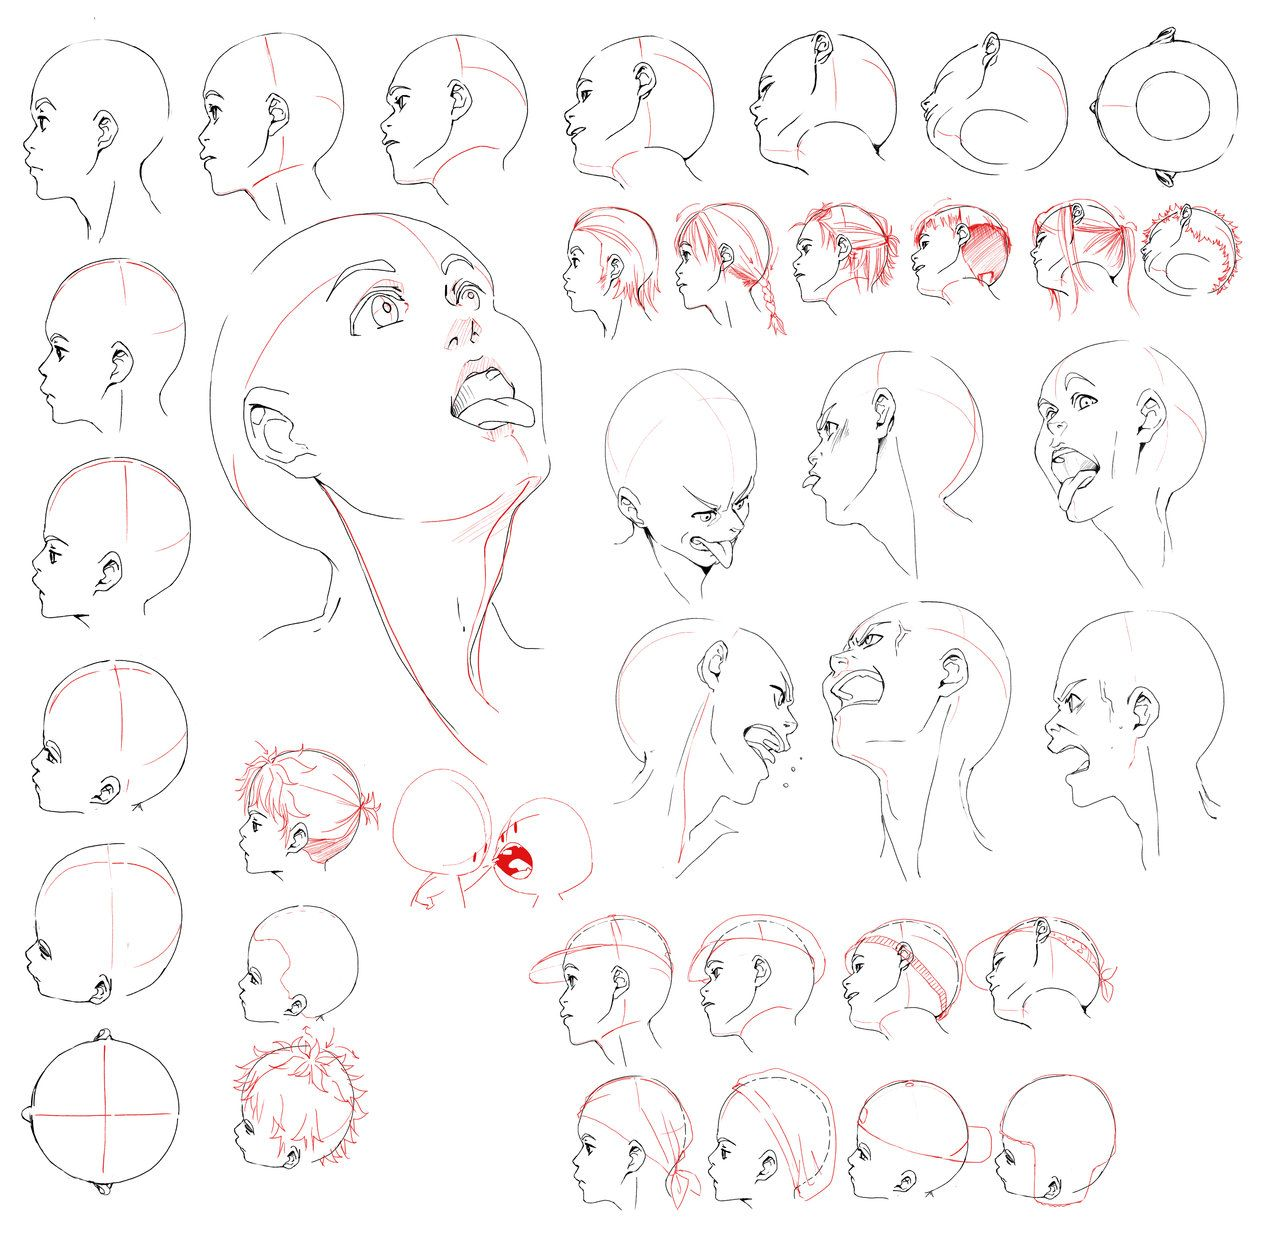 adriofthedead: carprediem: abbydoodles: Head & neck anatomy sheets ...